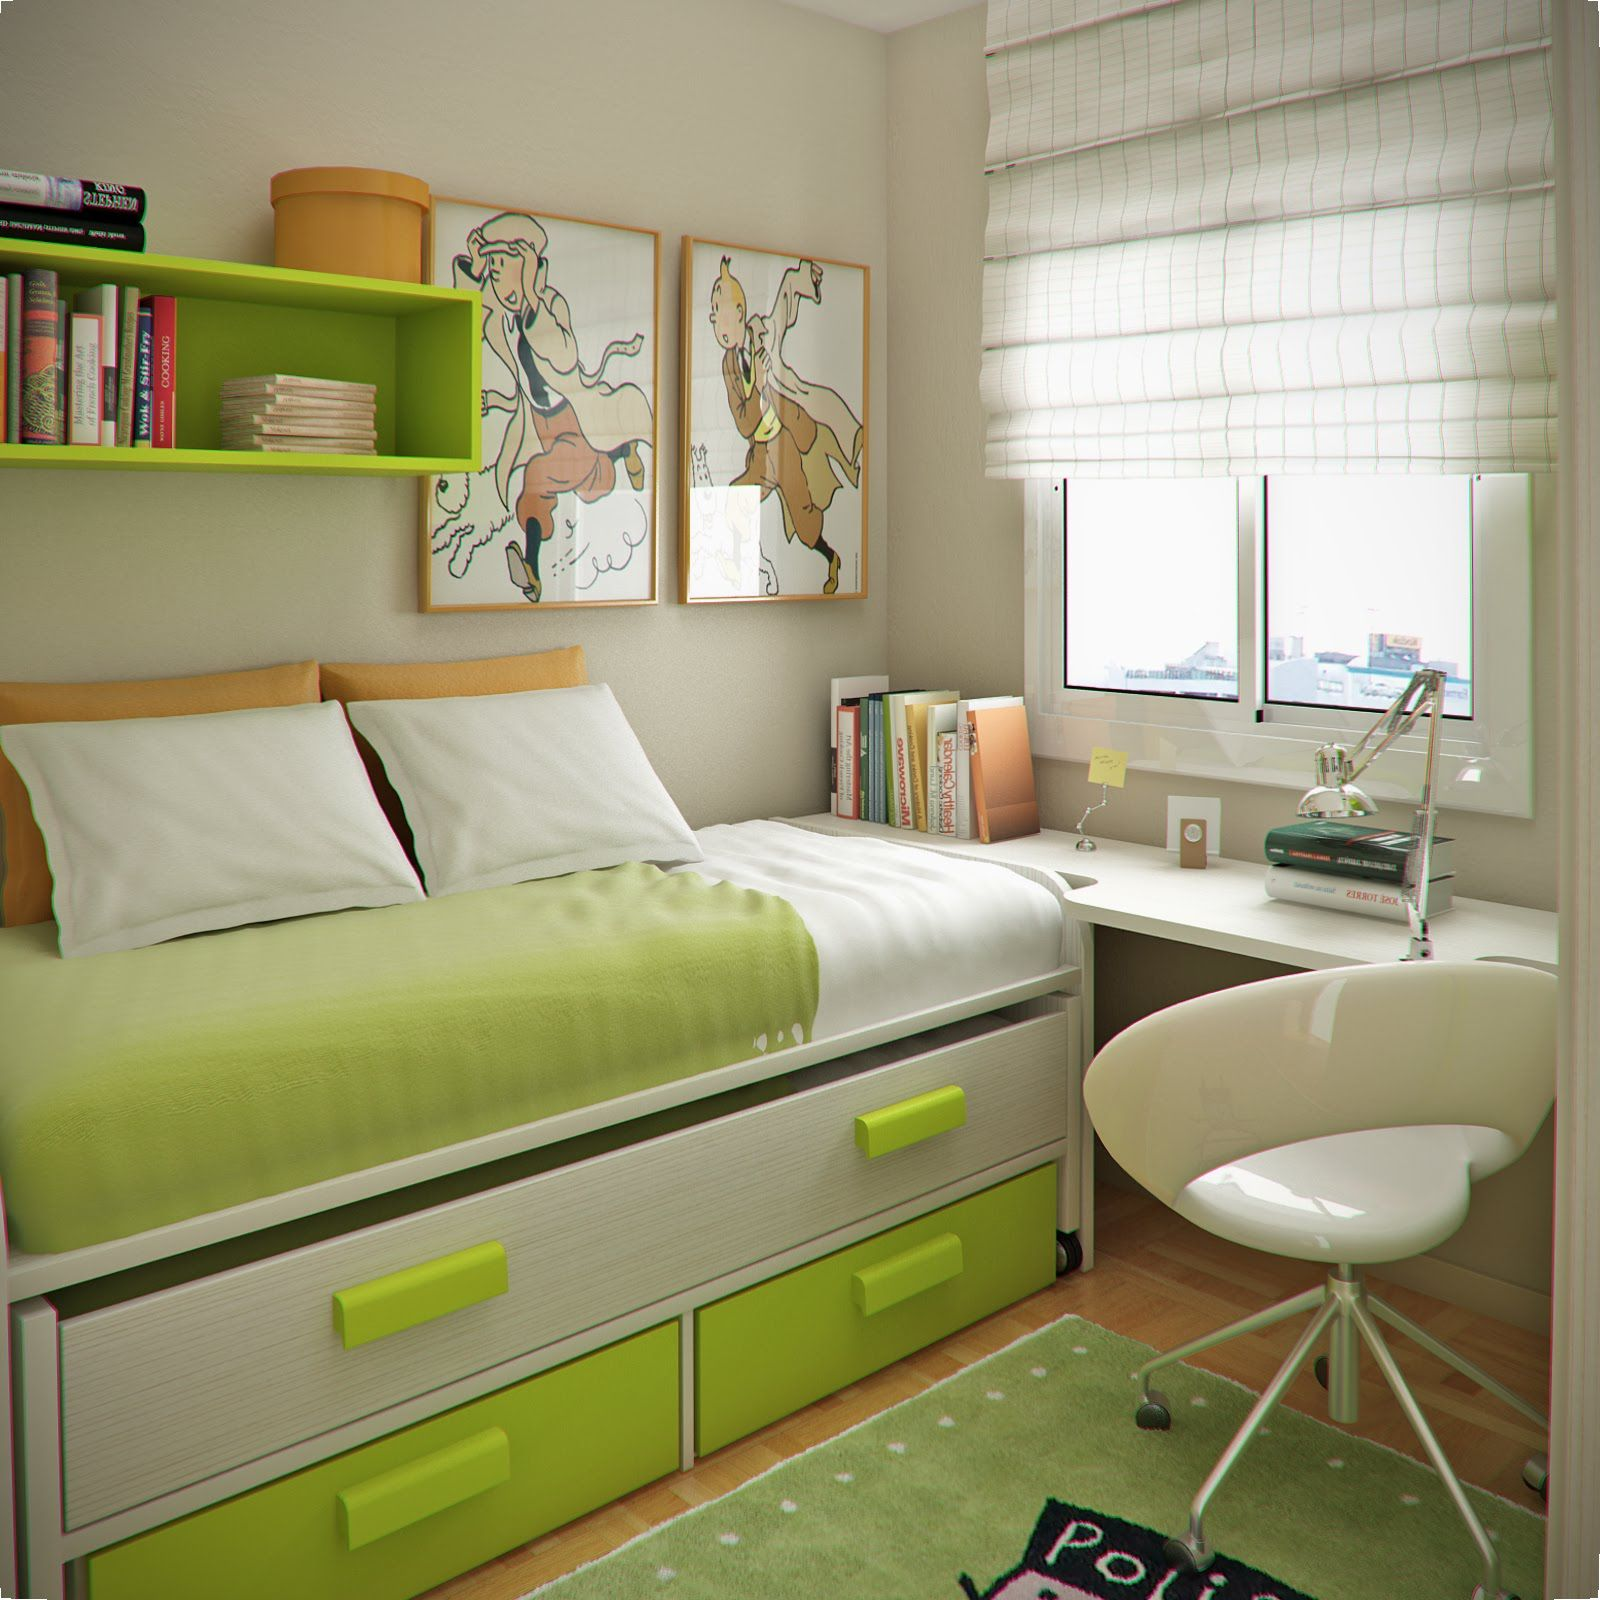 Enchanting Teenage Small Bedroom Designs With Green And White Color Single  Bed With Drawers As Clothing